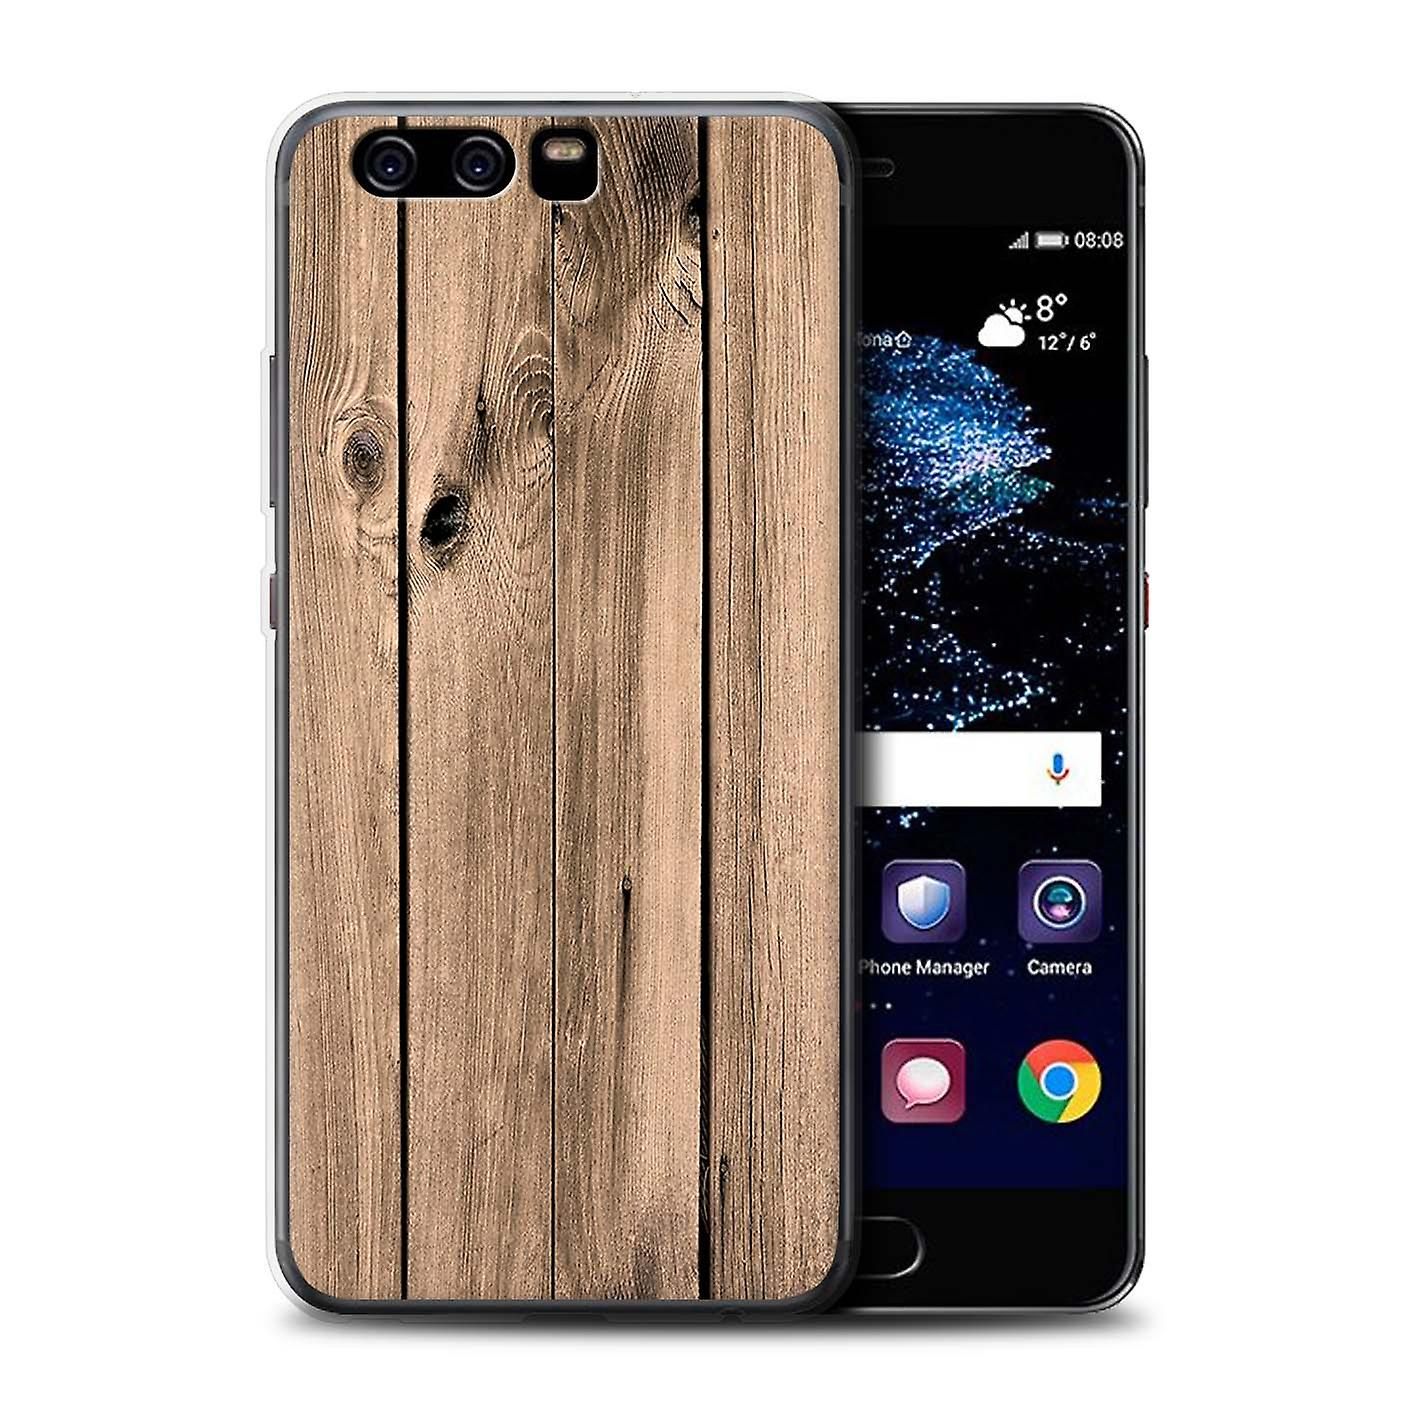 buy online b22e1 79f9b STUFF4 Gel TPU Phone Case/Cover for Huawei P10 / Plank Design / Wood Grain  Effect/Pattern Collection